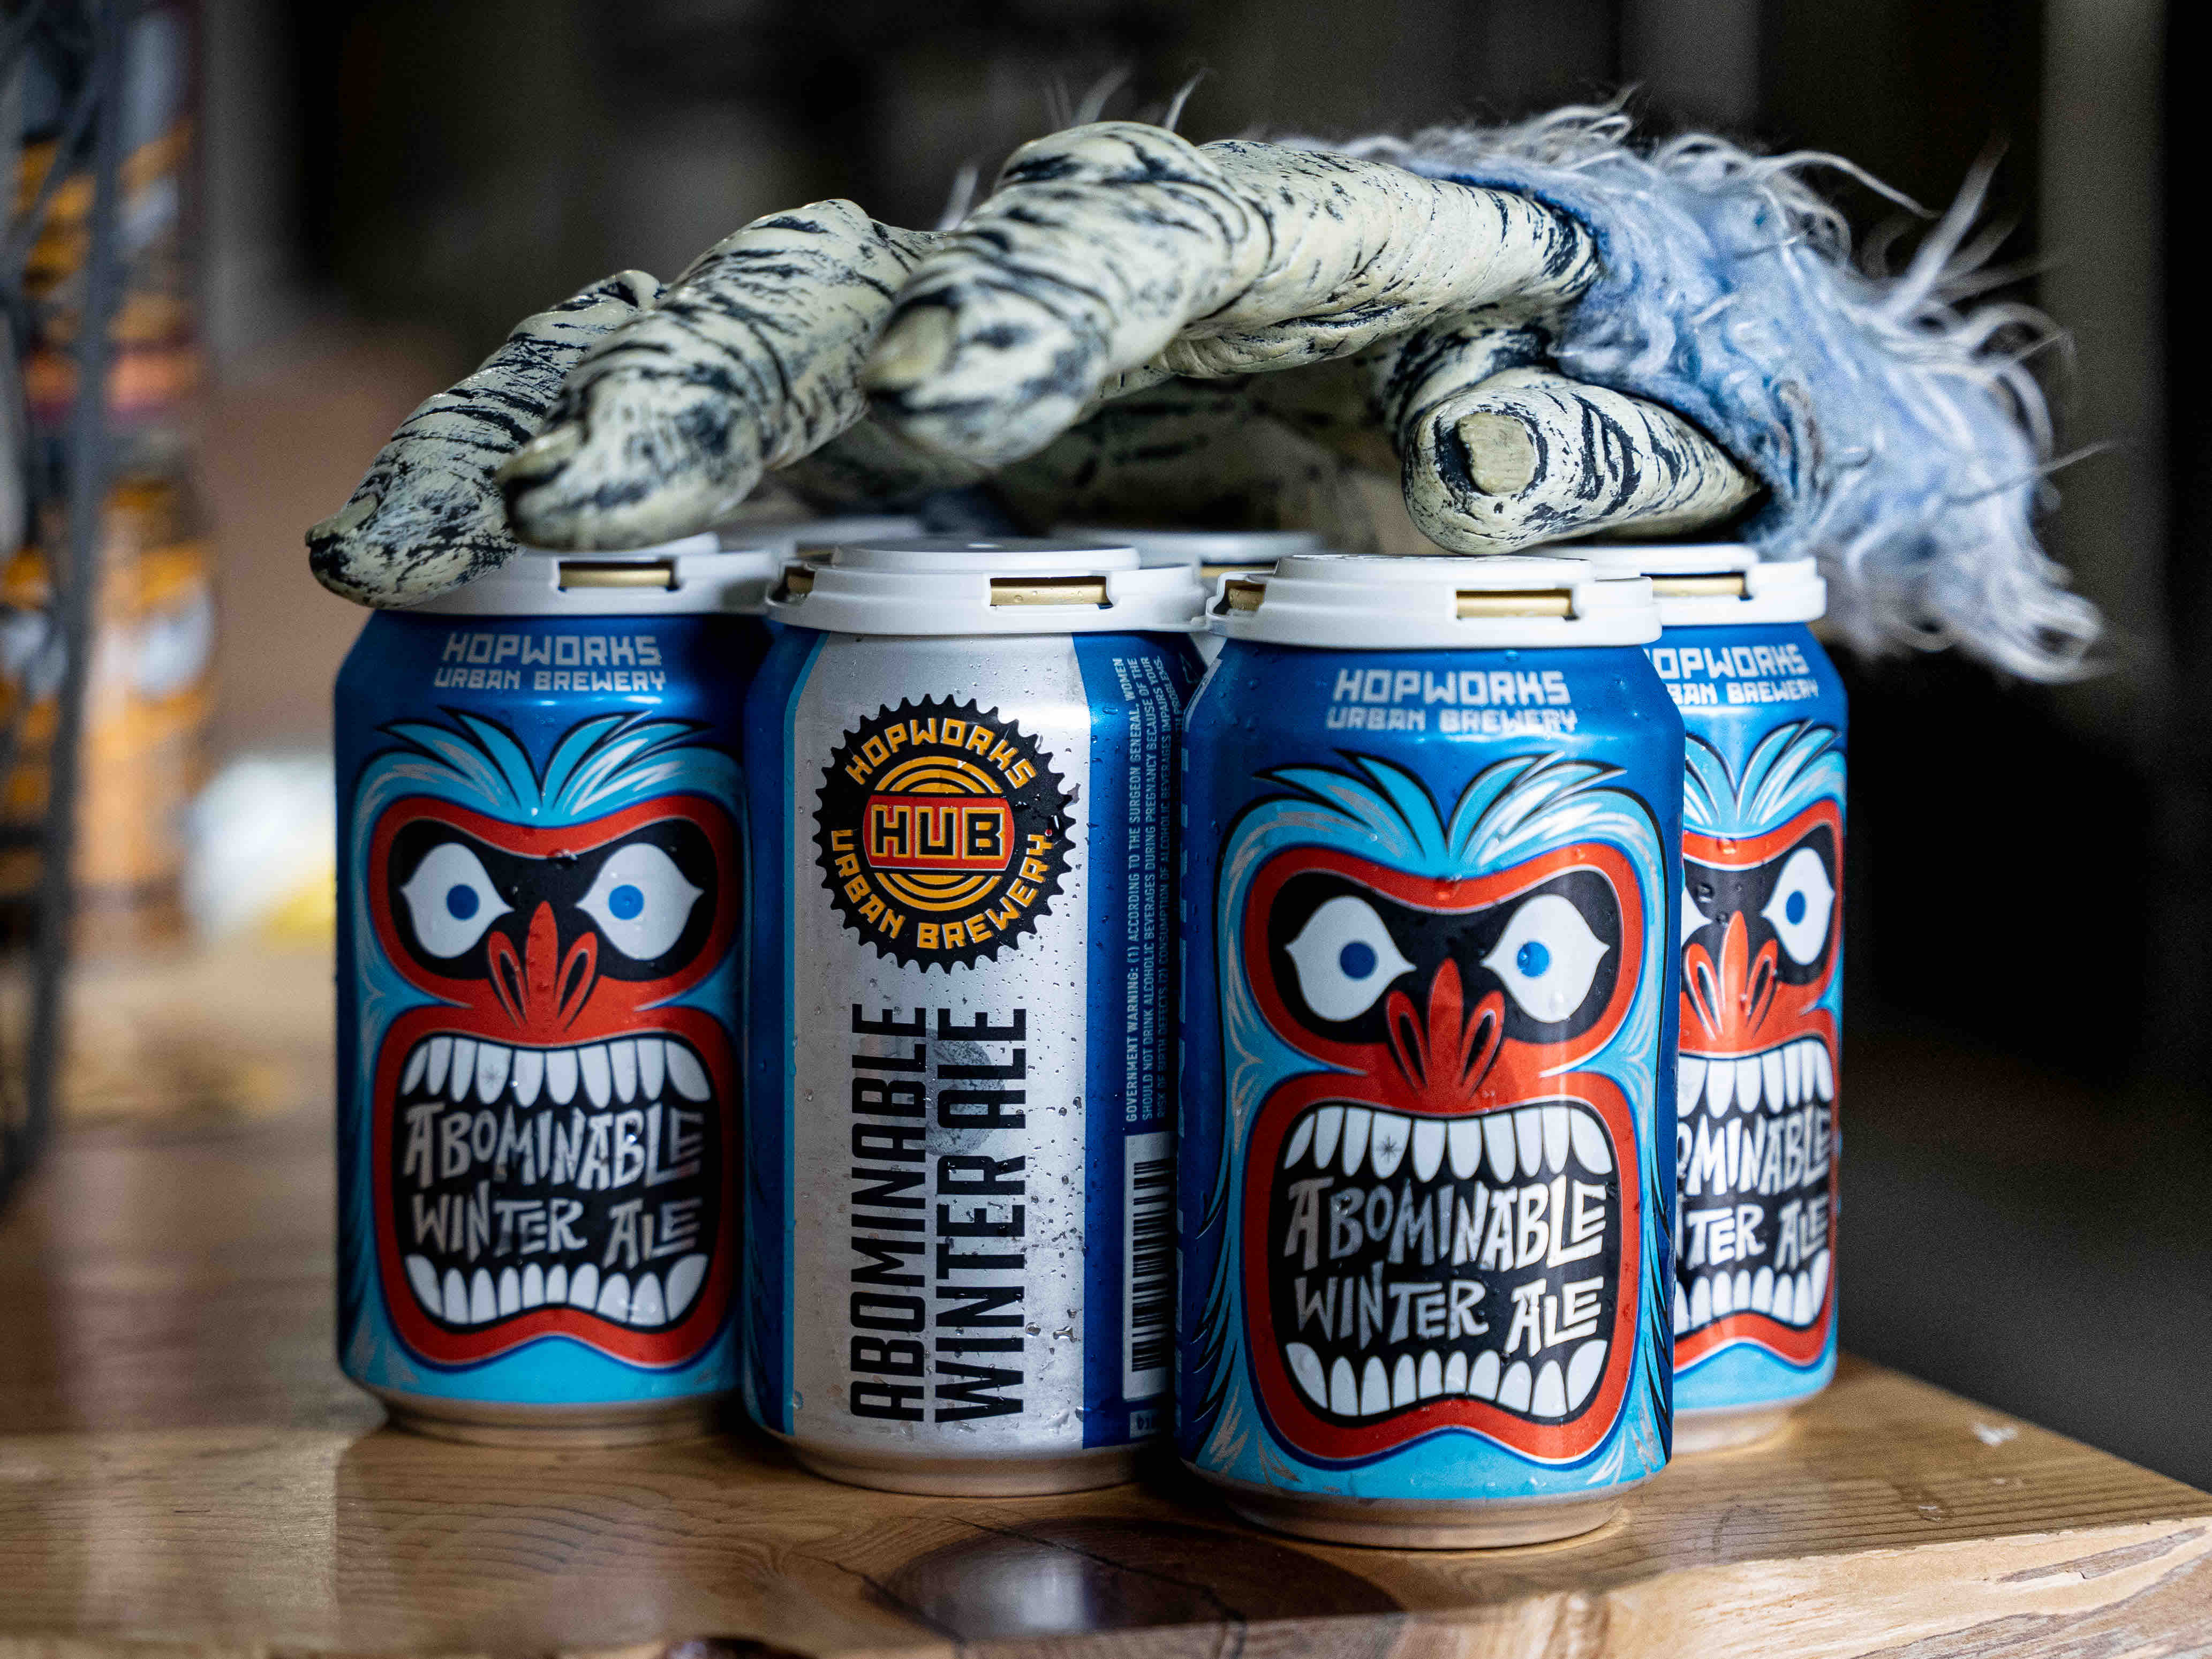 image of Abominable Winter Ale courtesy of Hopworks Urban Brewery